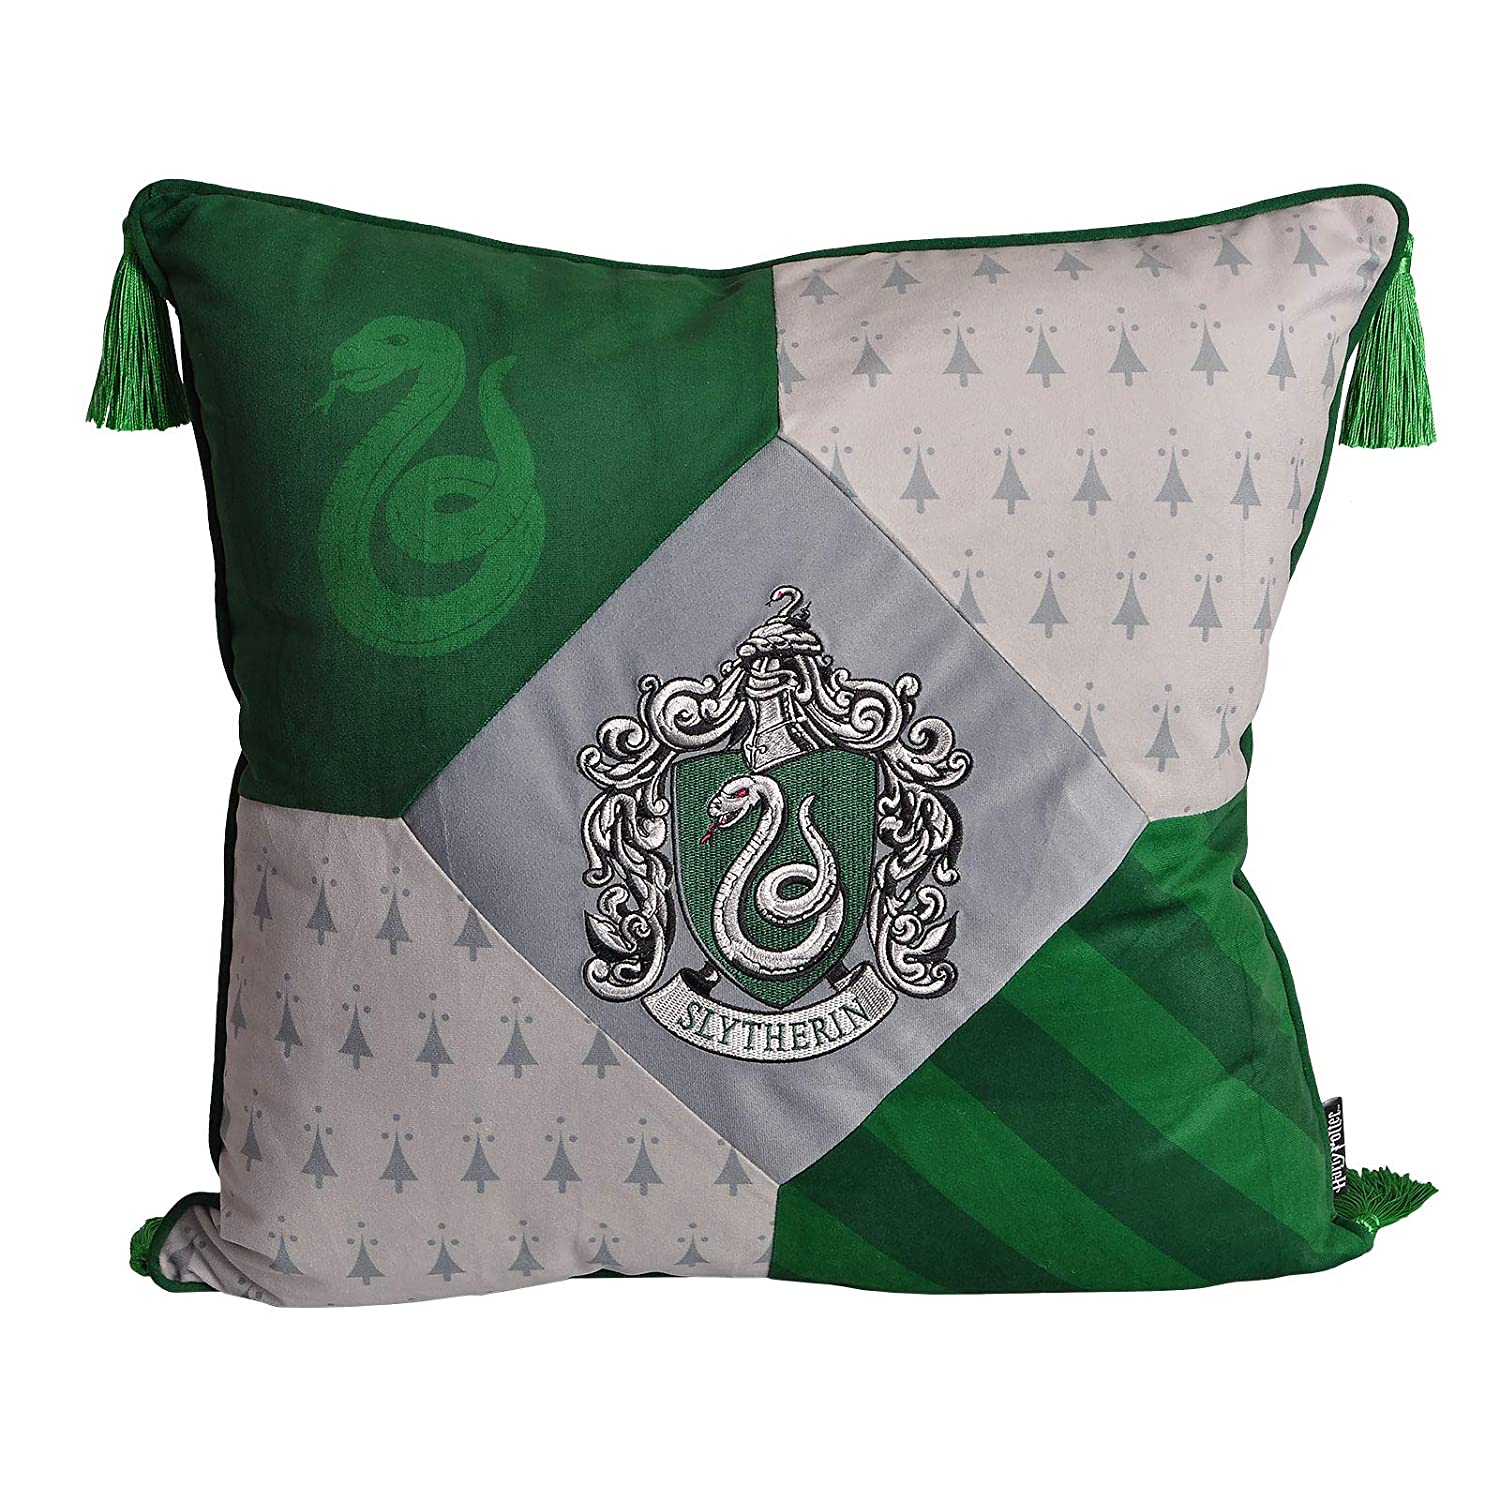 Cojín Harry Potter Slytherin con borlas 48x48cm Elbe Bosque ...